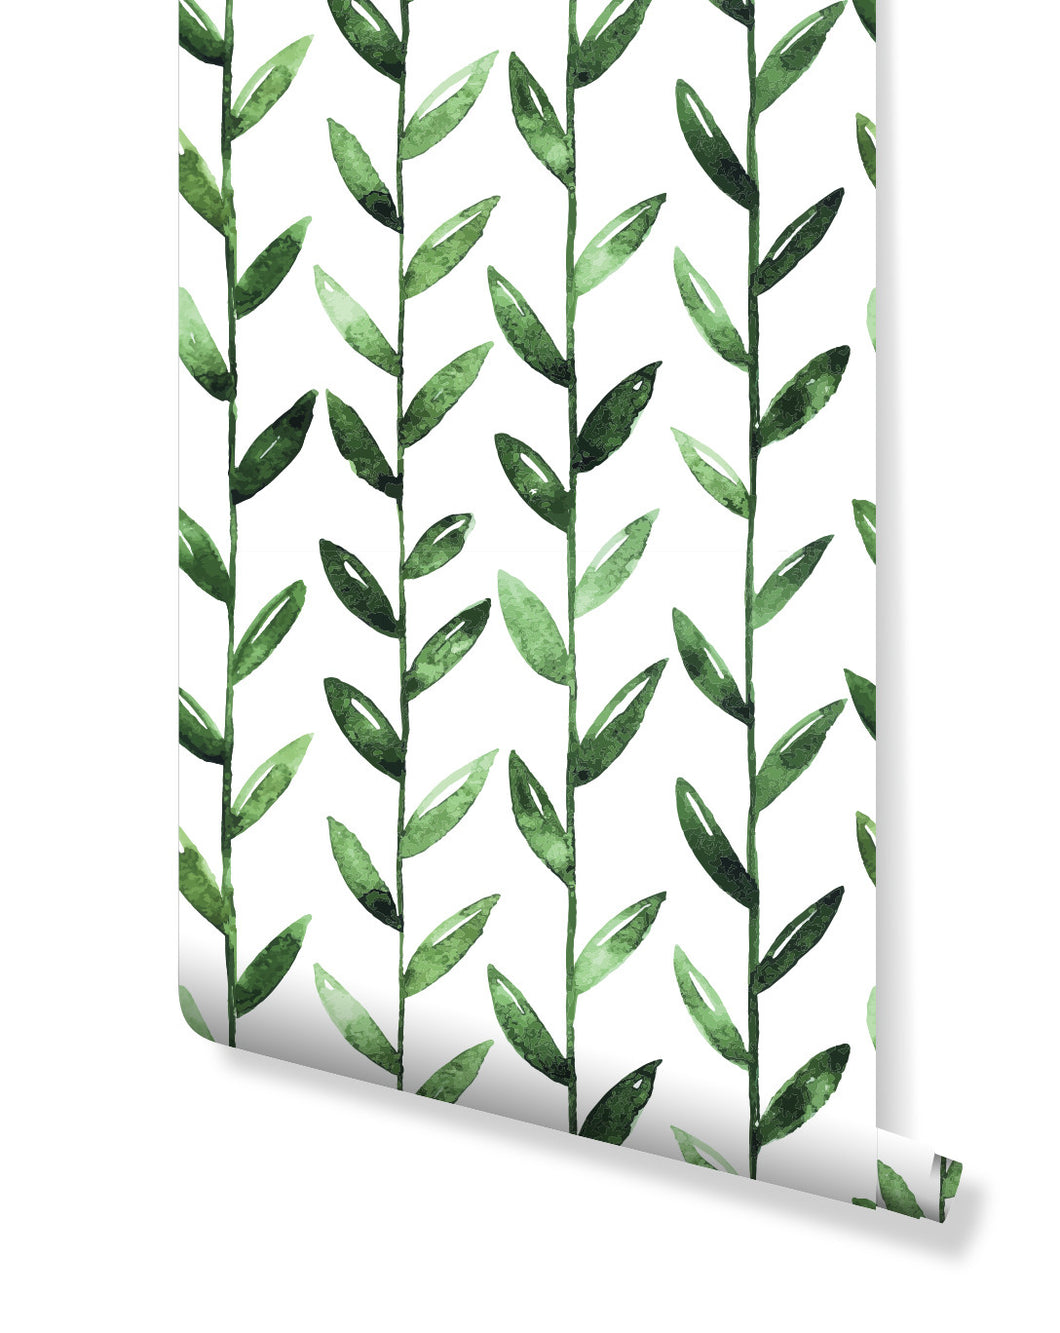 Temporary Self Adhesive Removable Vinyl Wallpaper with Watercolor Green Leaves On White tropical flowers, great for Bedroom & Living Room wall decor, Peel and stick application CC003